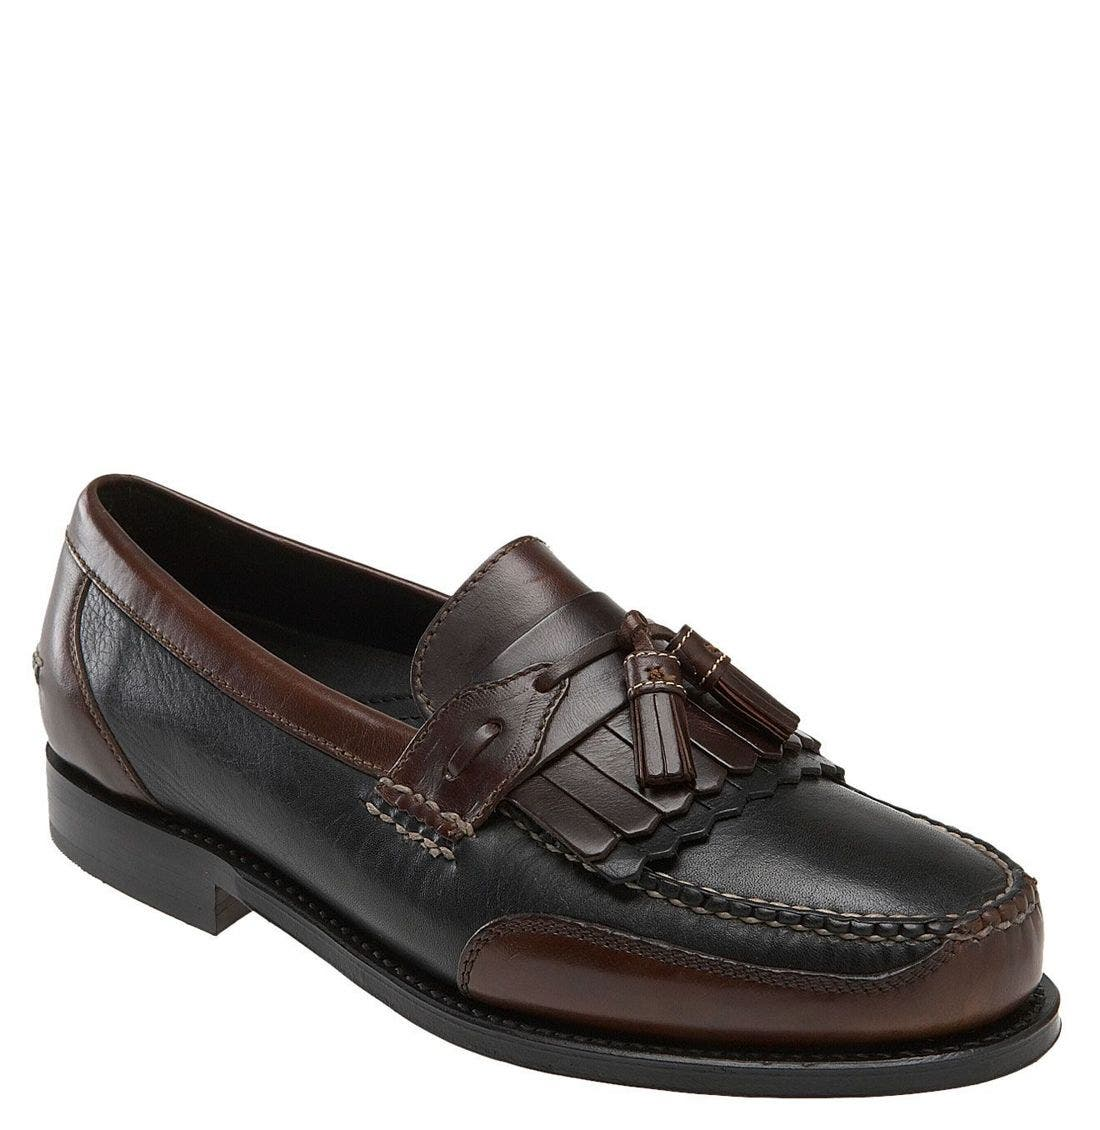 'Murphy' Loafer,                             Main thumbnail 1, color,                             BLK